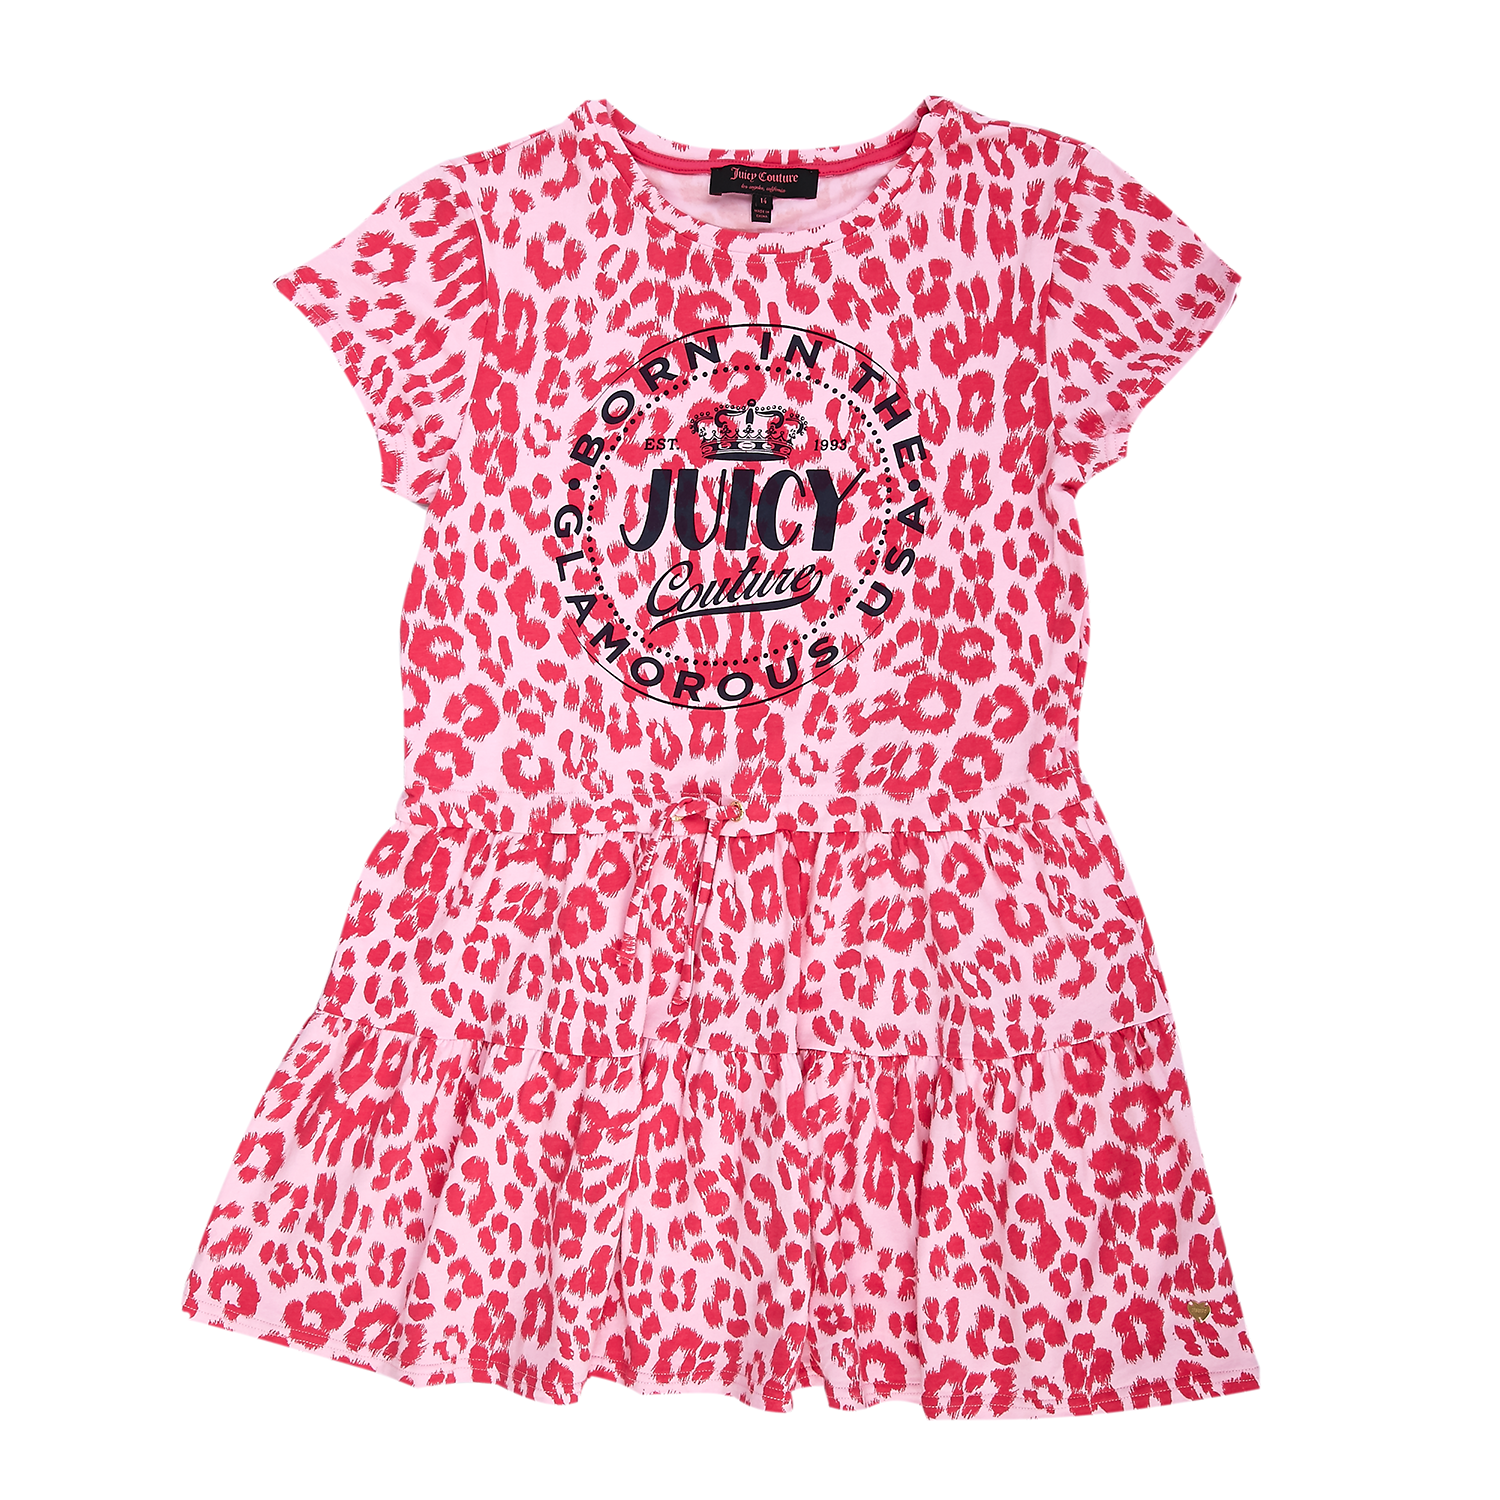 JUICY COUTURE KIDS - Παιδικό φόρεμα Juicy Couture ροζ